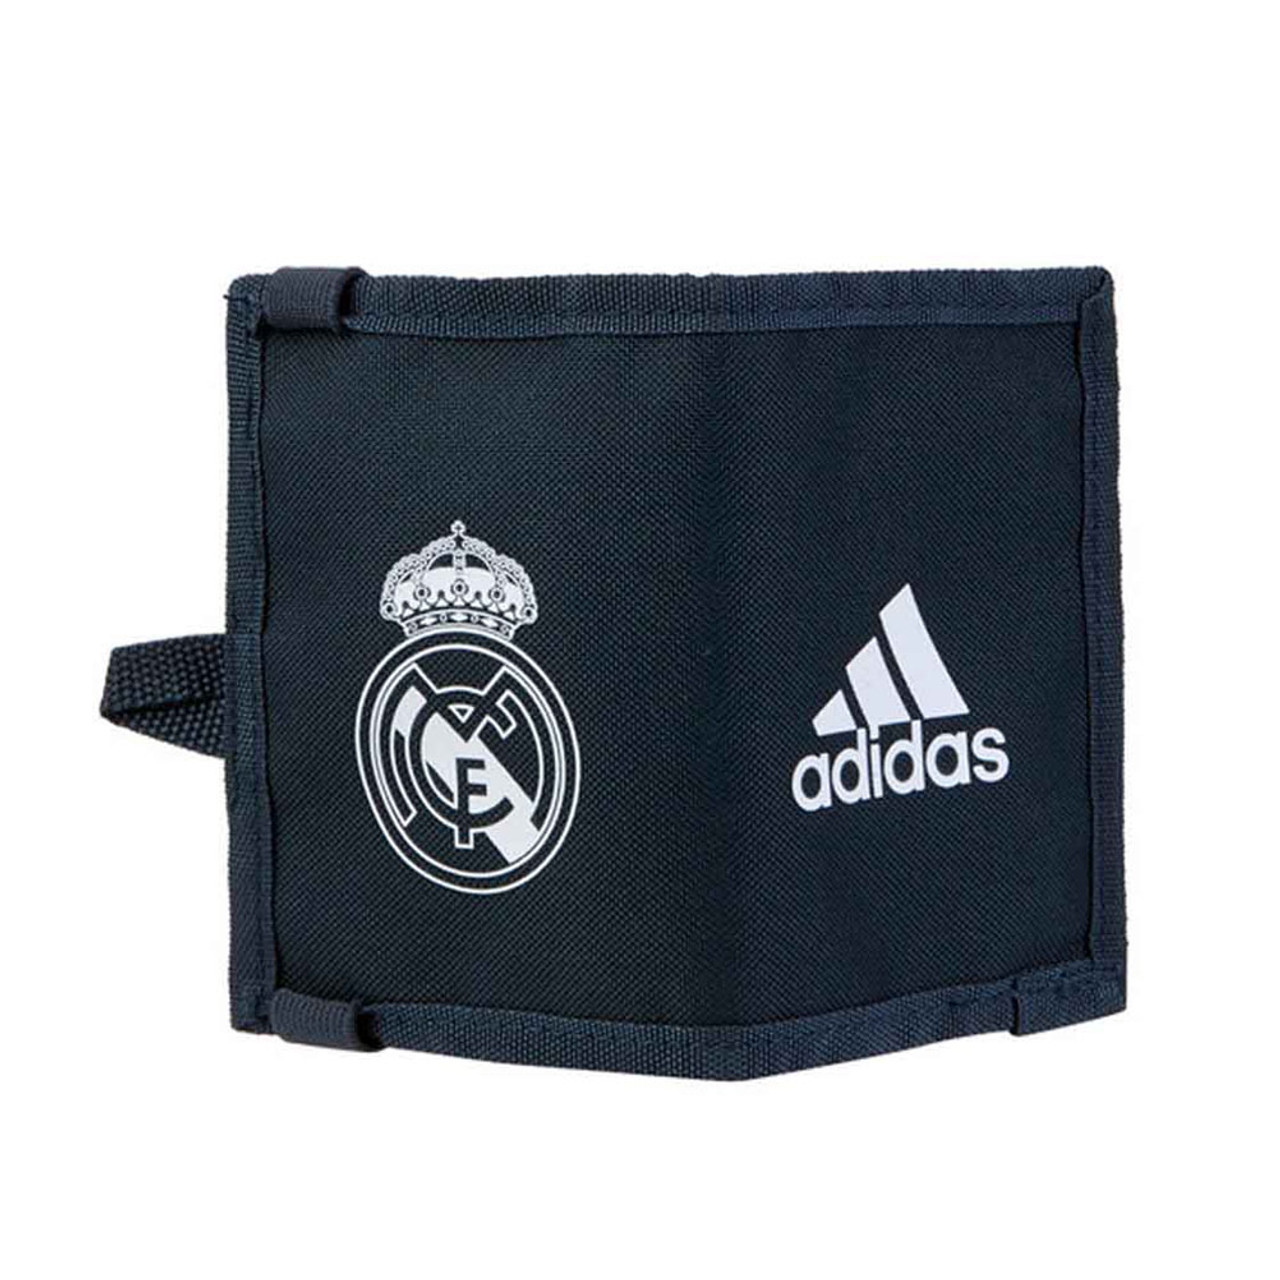 ADIDAS Real Madrid 201819 Wallet [dark grey]